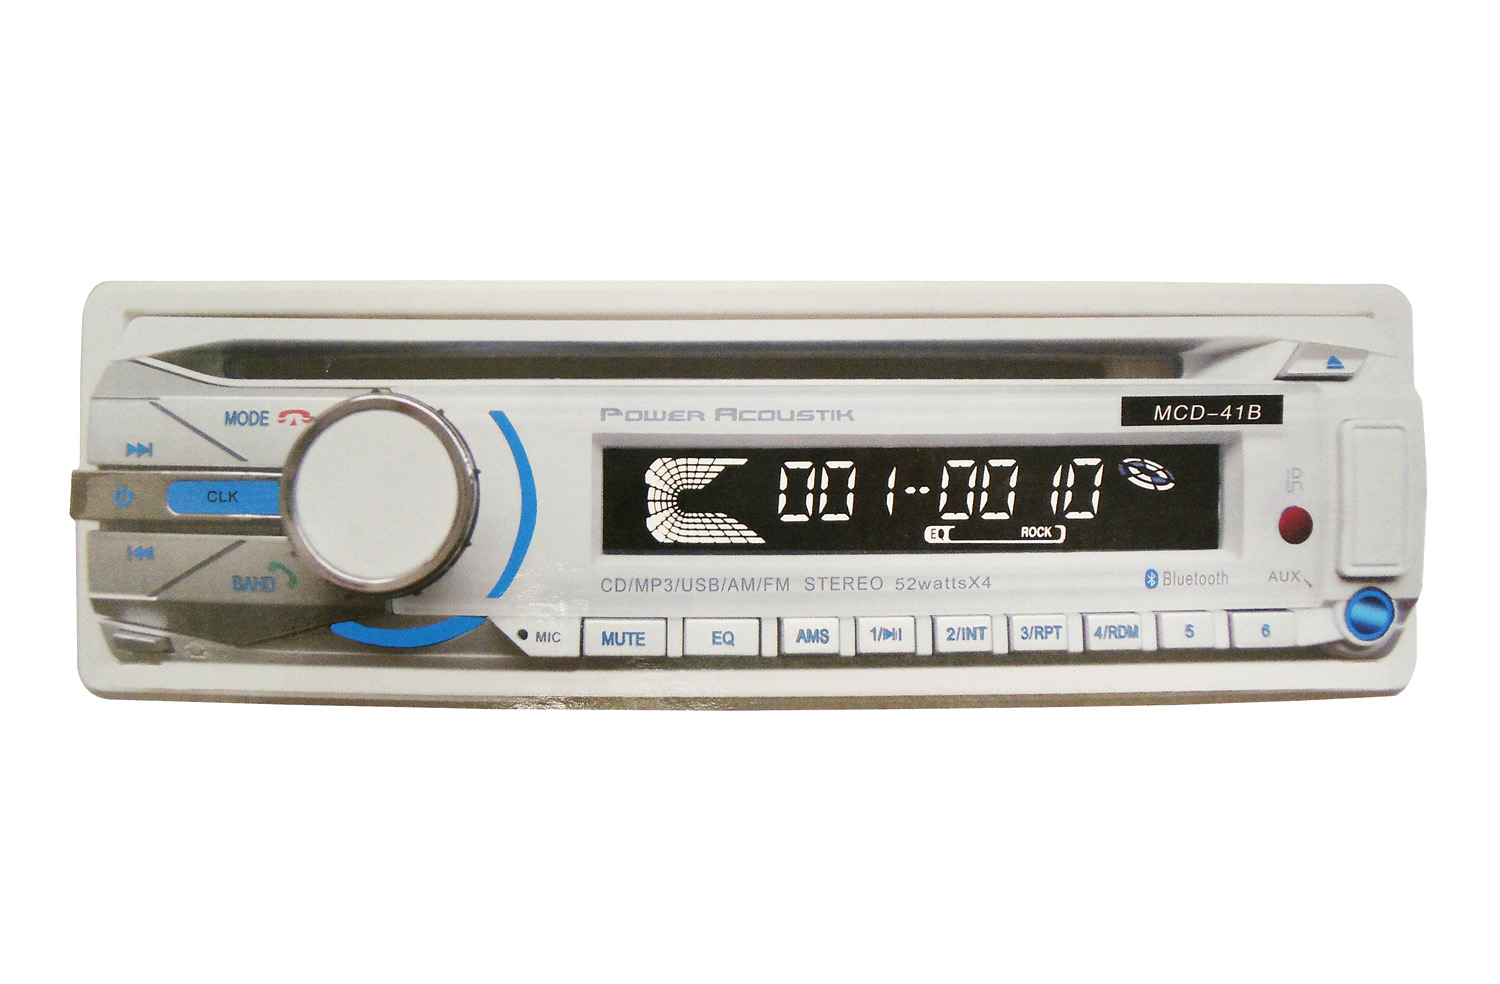 POWER ACOUSTIK - 1 DIN DETACHABLE FACE (52 WATTS X 4) CD/MP3 AM/FM STEREO RECEIVER WITH V3.0 BLUETOOTH, USB PORT & AUXILIARY INP